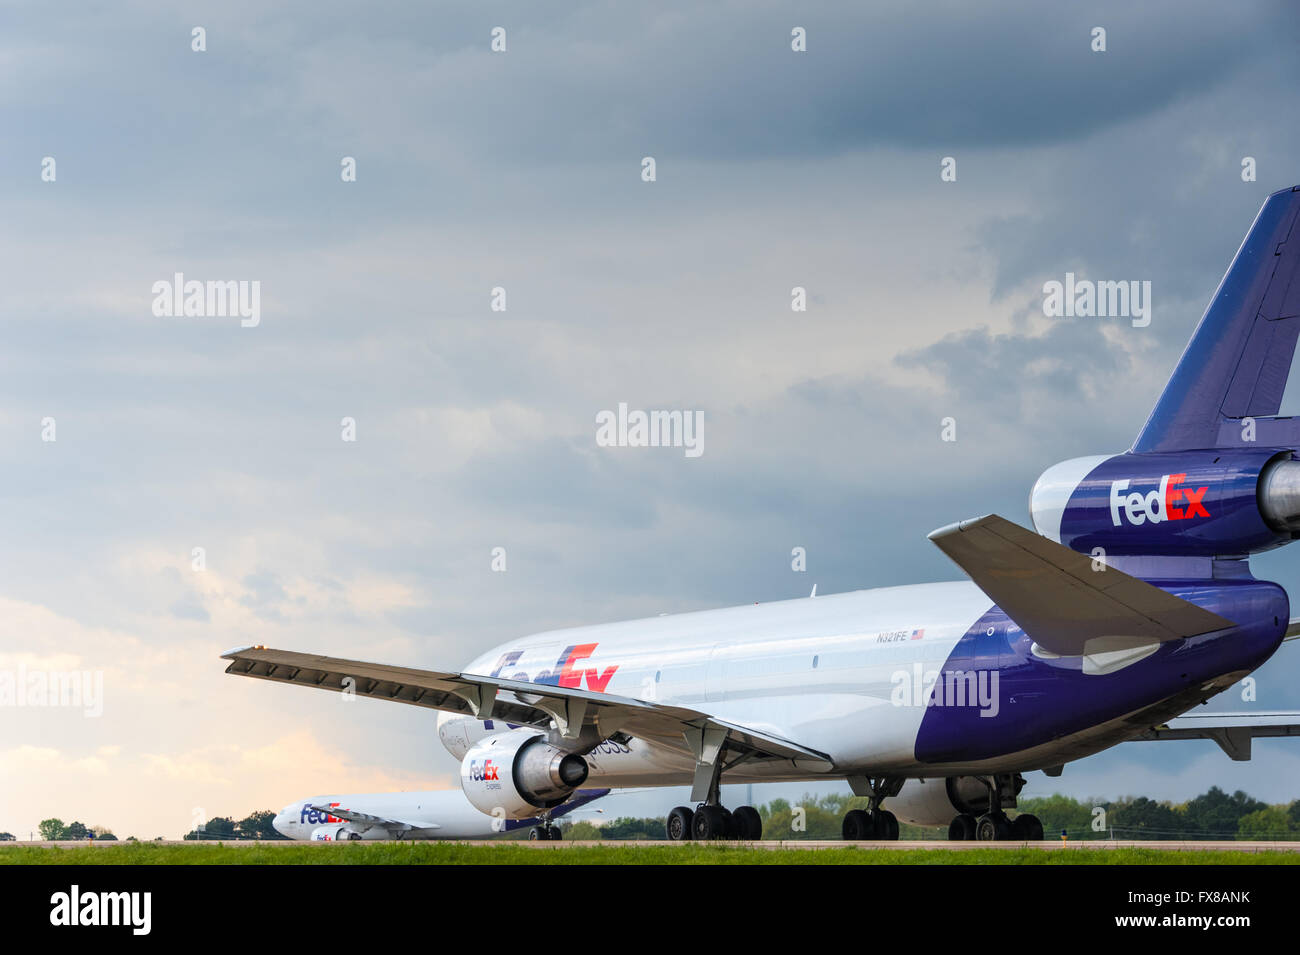 FedEx Express jets preparing for take off at Memphis International Airport, FedEx's global headquarters. USA. - Stock Image